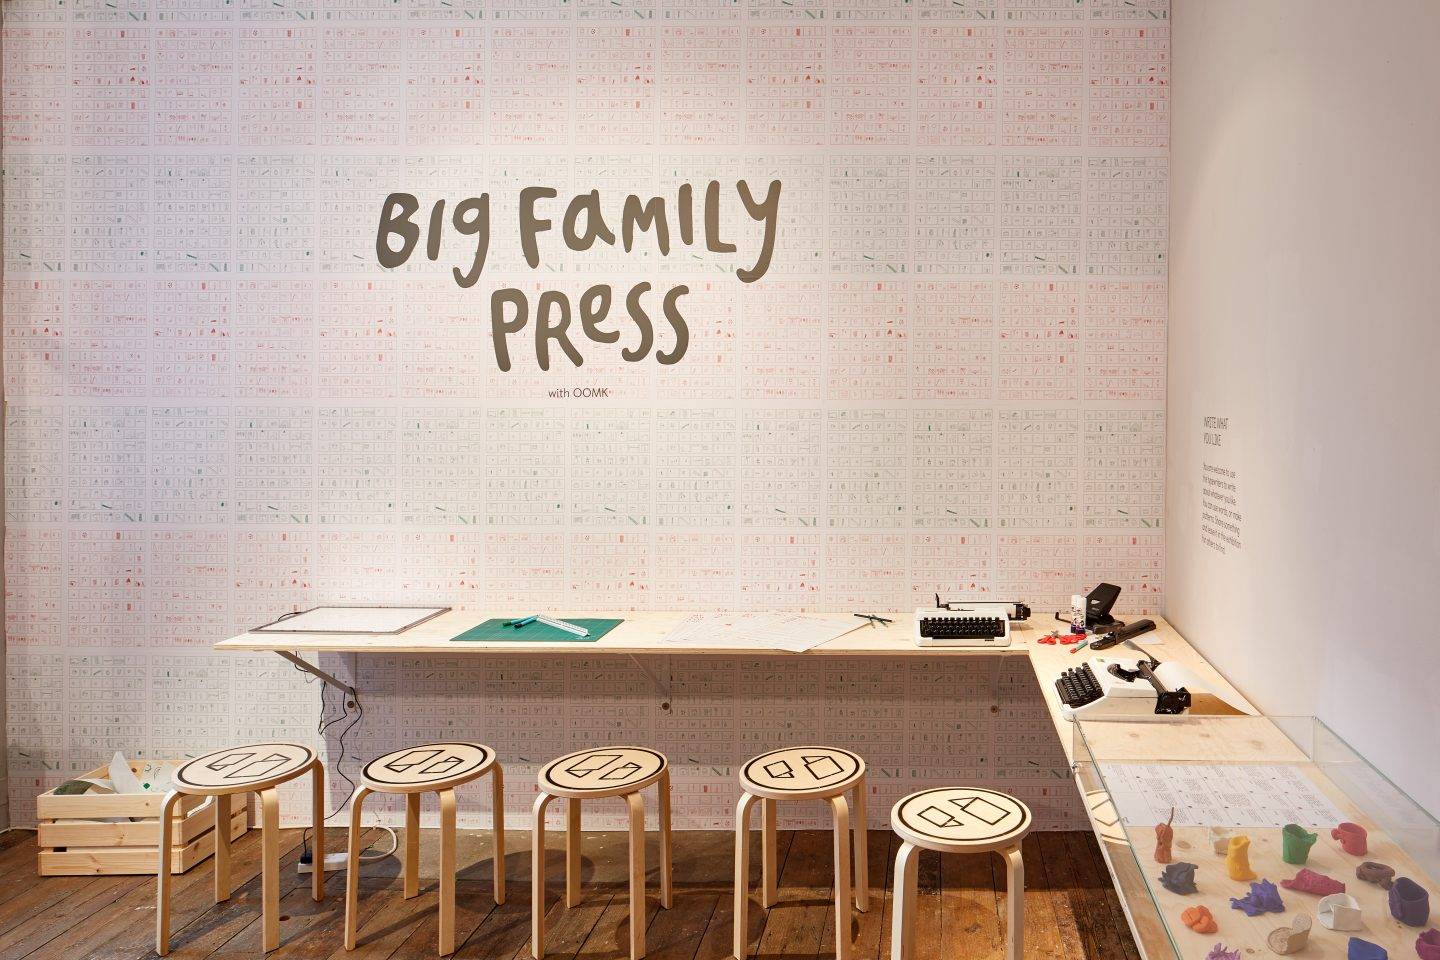 Big Family Press with OOMK, South London Gallery, 2018. Photo: Andy Stagg